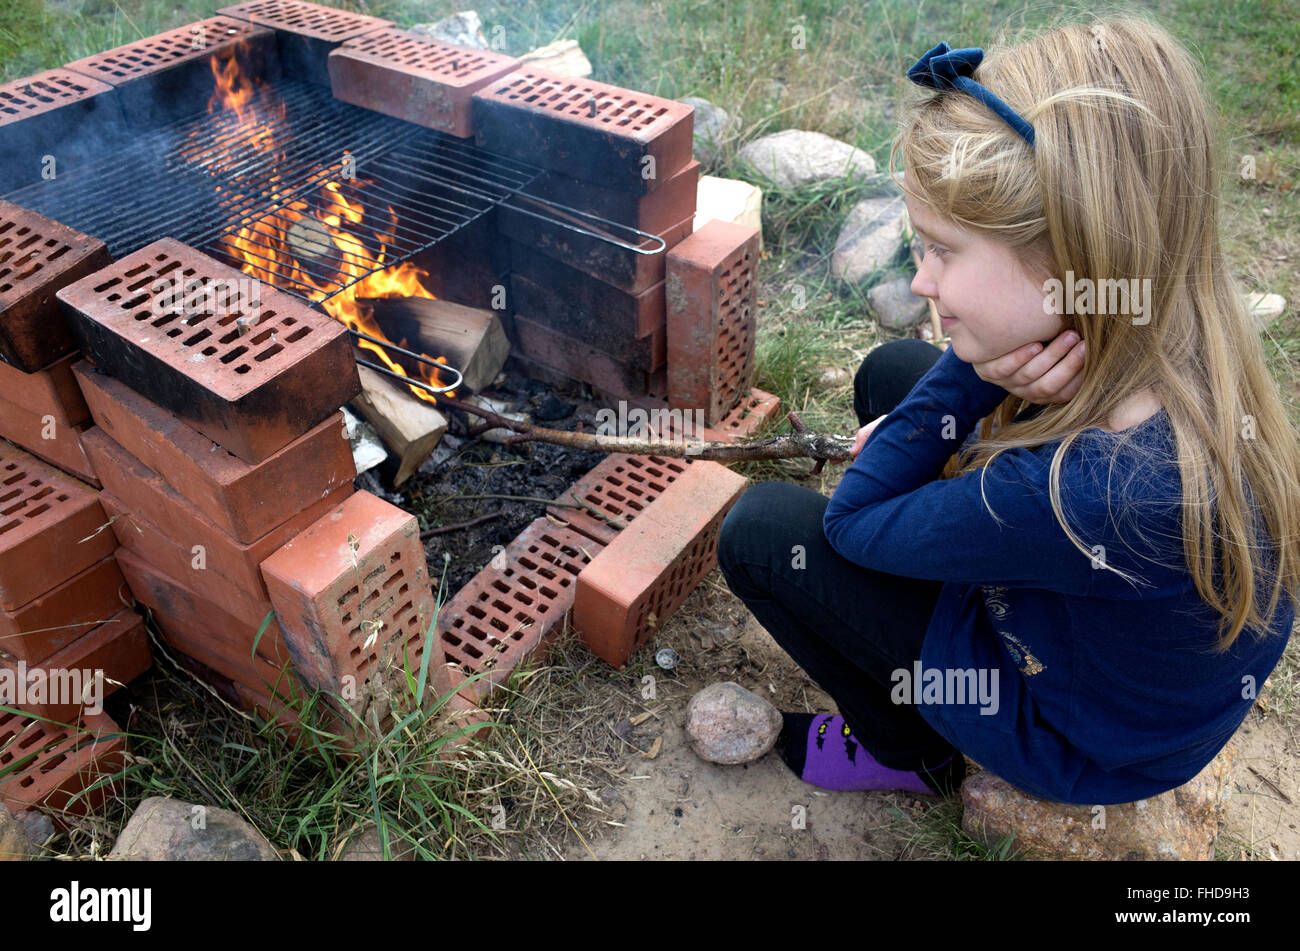 Young Polish girl age 8 musing while poking fire with a stick in outside grill fireplace. Zawady Central Poland - Stock Image